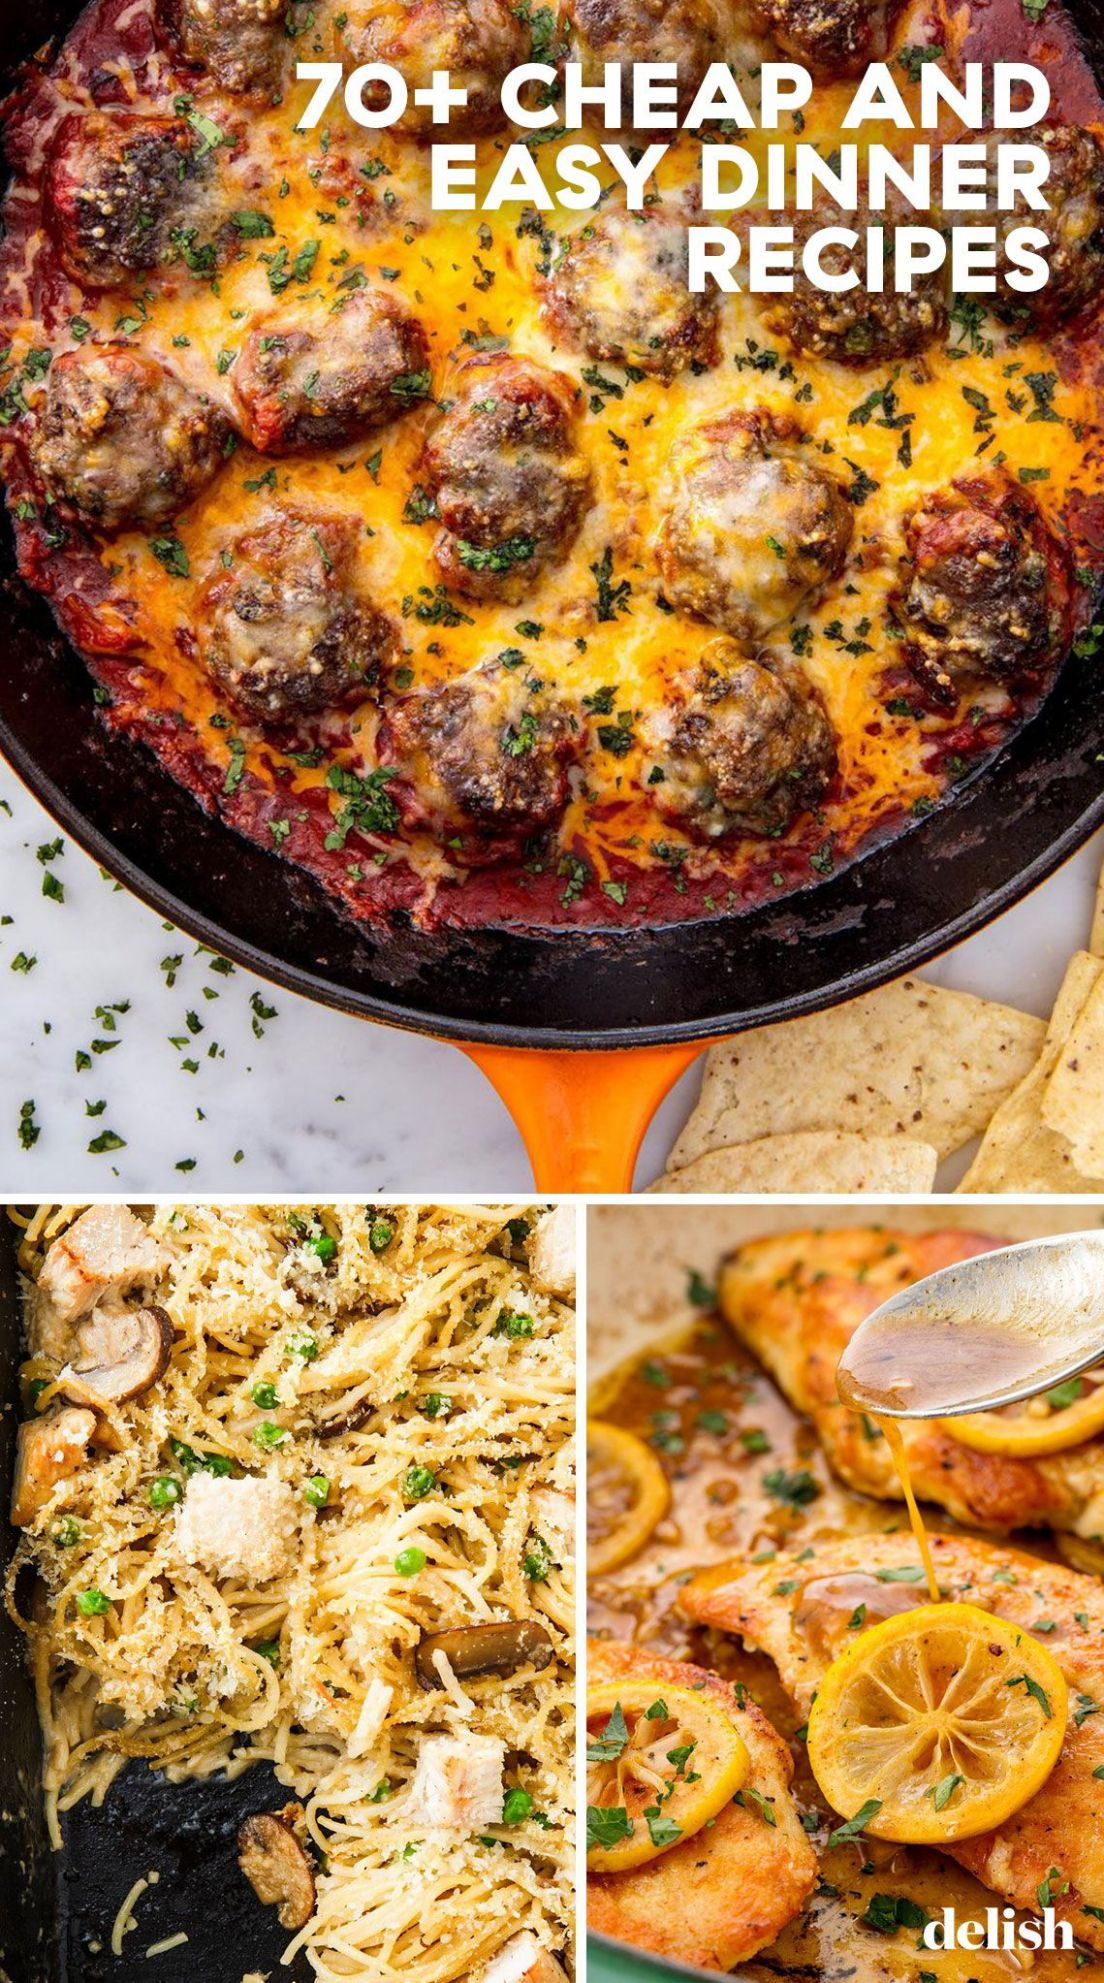 12+ Easy Cheap Dinner Recipes - Inexpensive Dinner Ideas - Simple Quick Recipes For Dinner